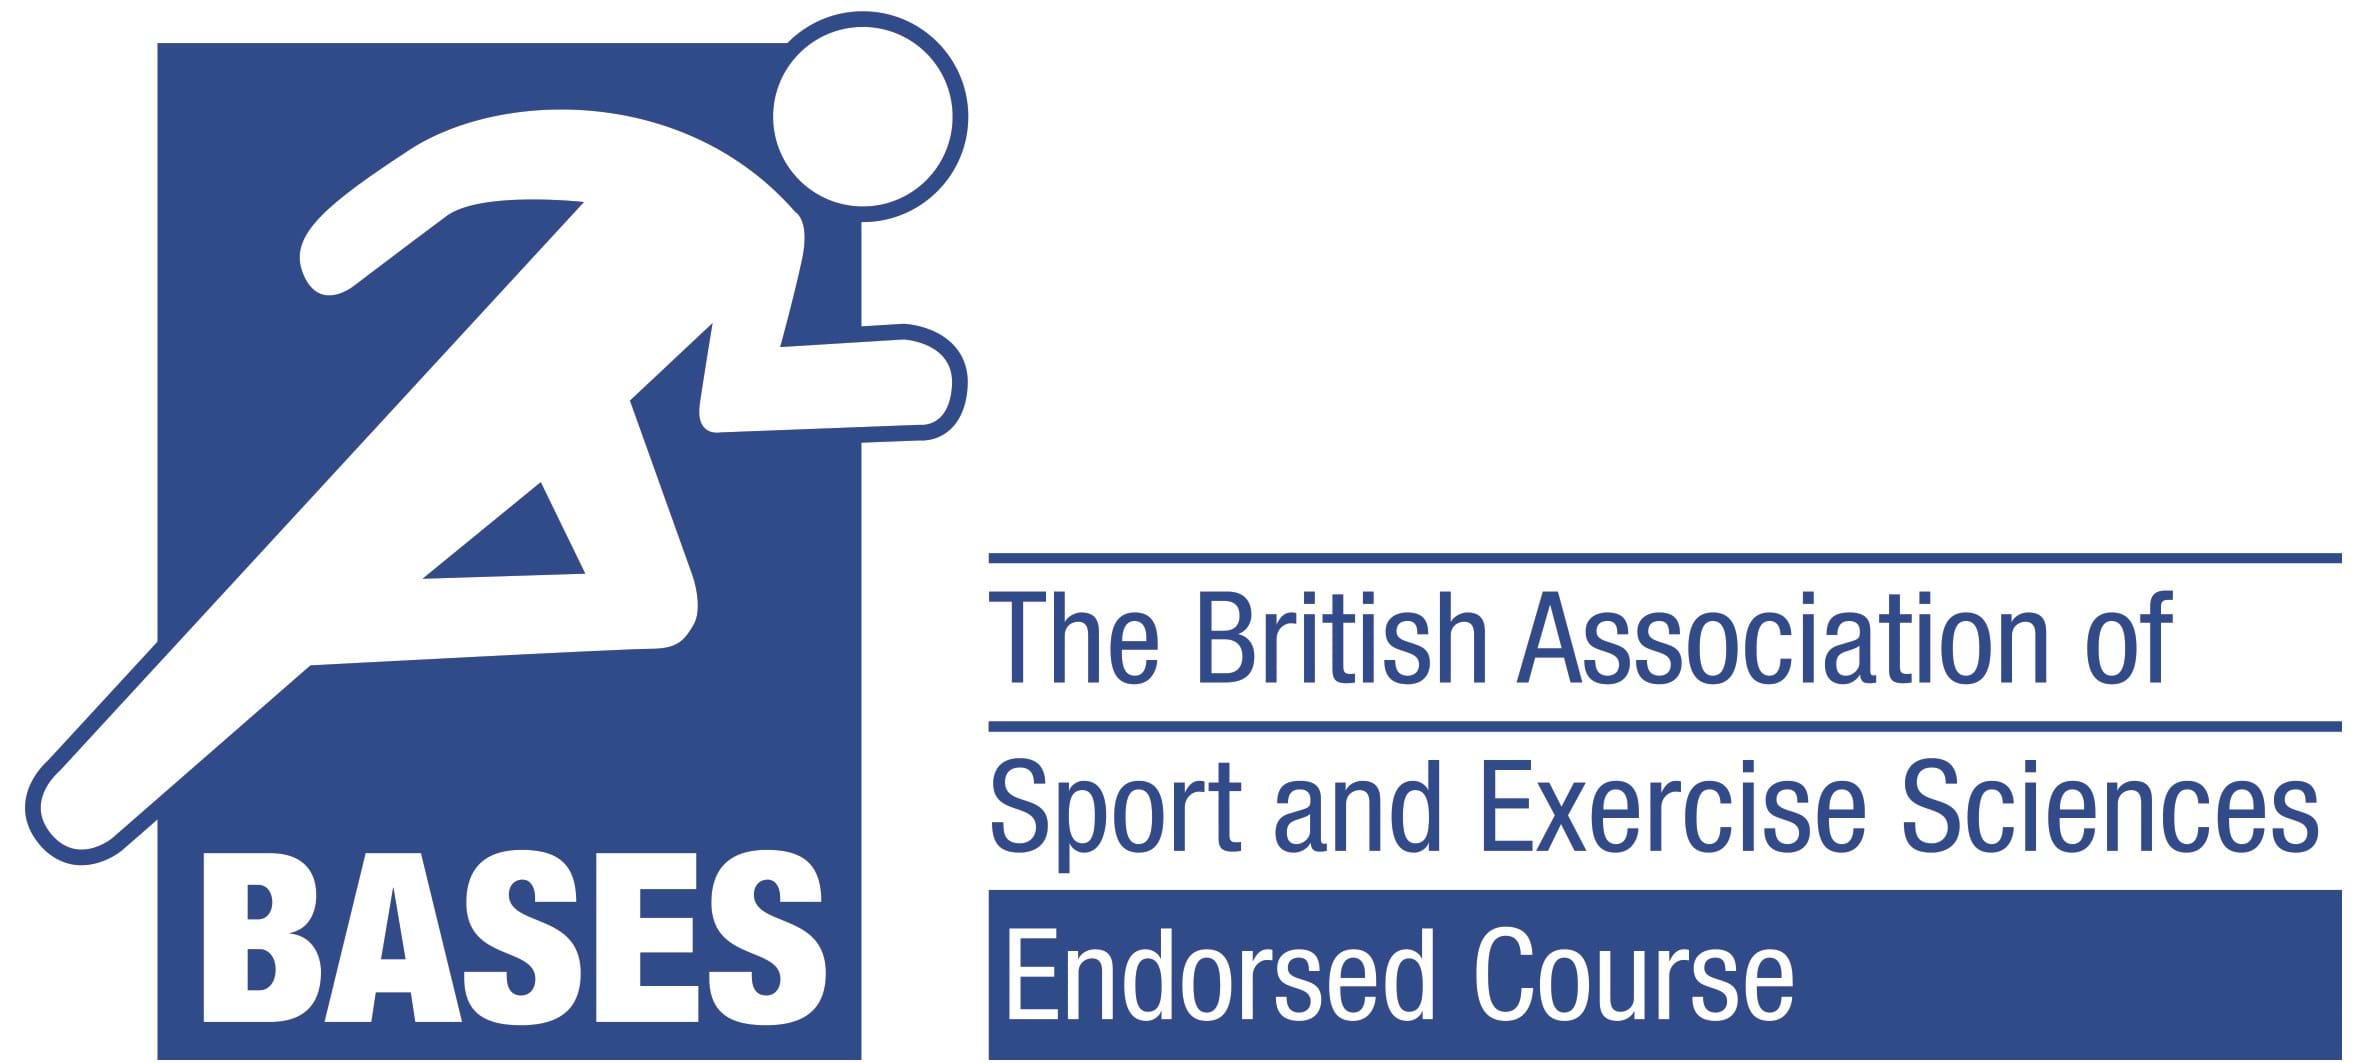 BASES endorsed course logo